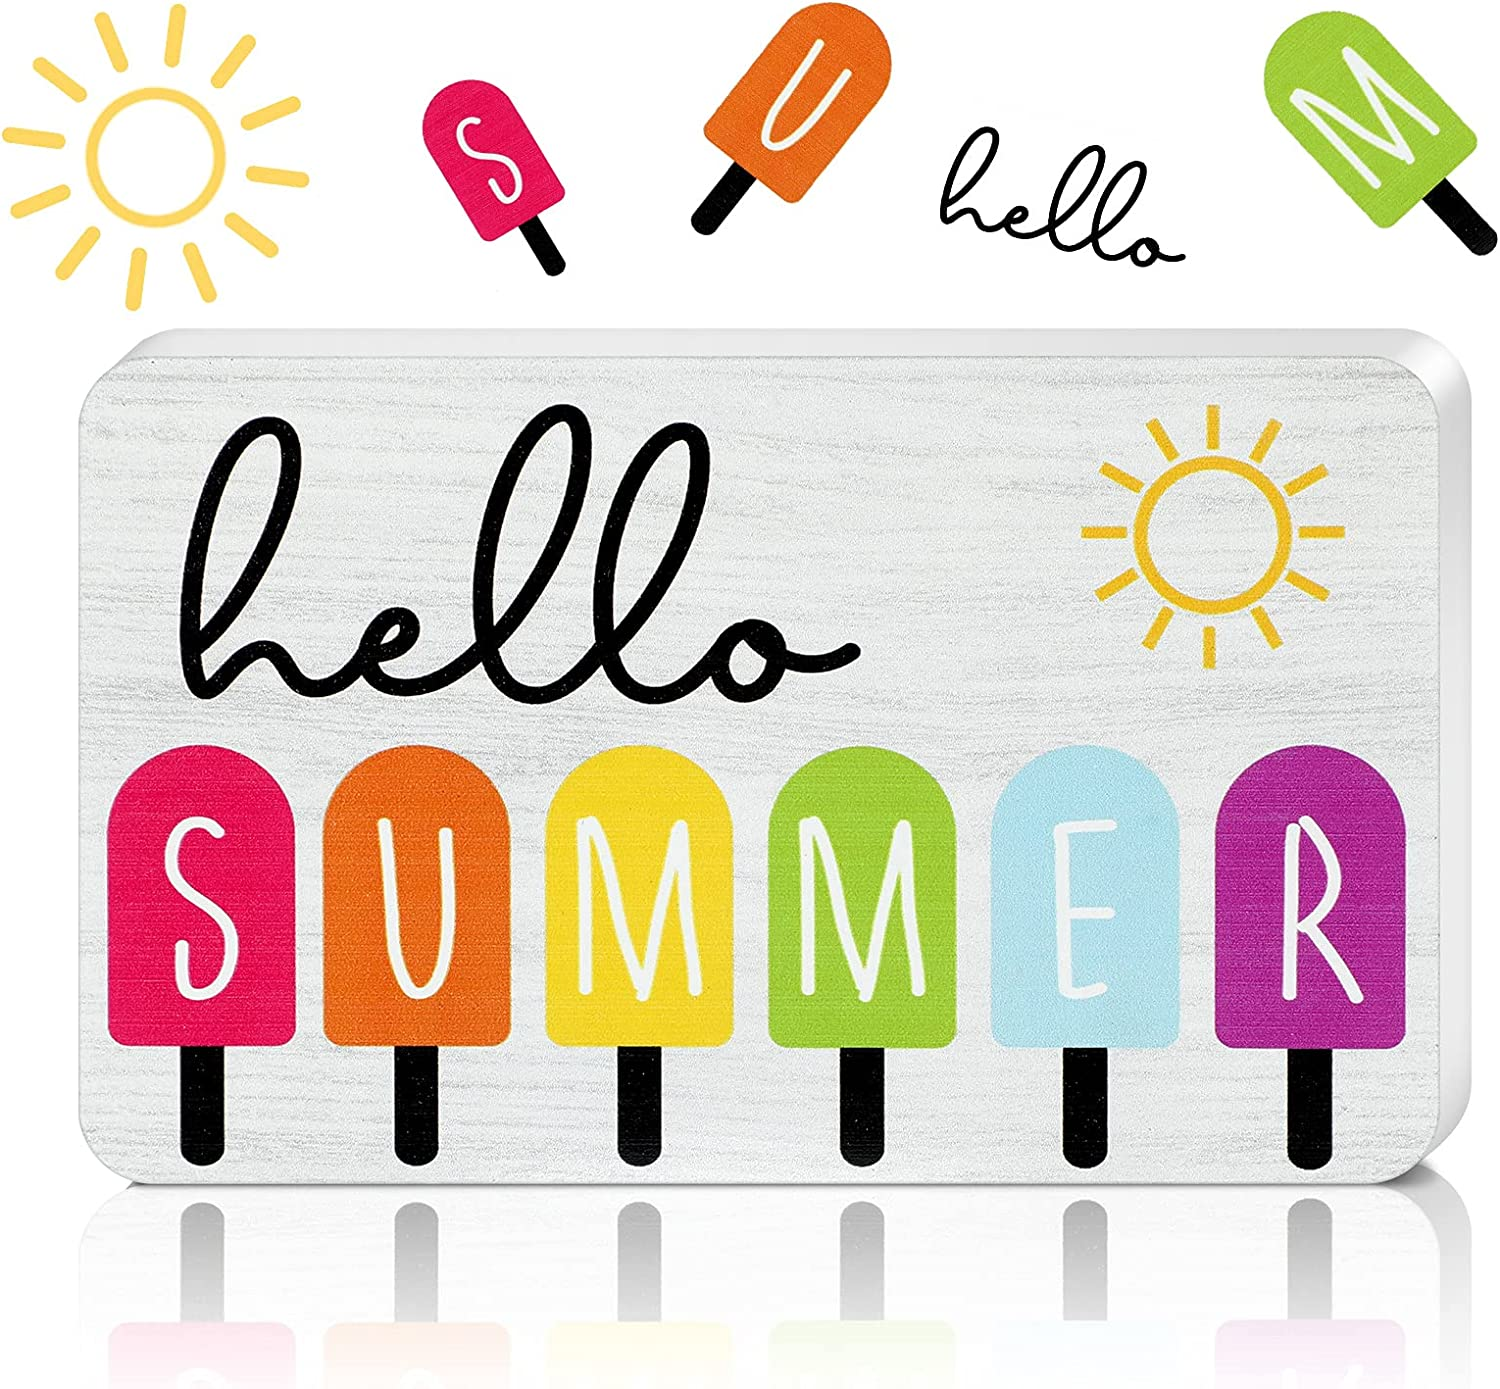 Hello Summer with Popsicles Sign Wooden Hello Summer Sign Block Decor Rustic Hello Summer Wooden Sign for Tiered Tray Decor Home Indoor and Outdoor, 5.5 x 3.3 Inch